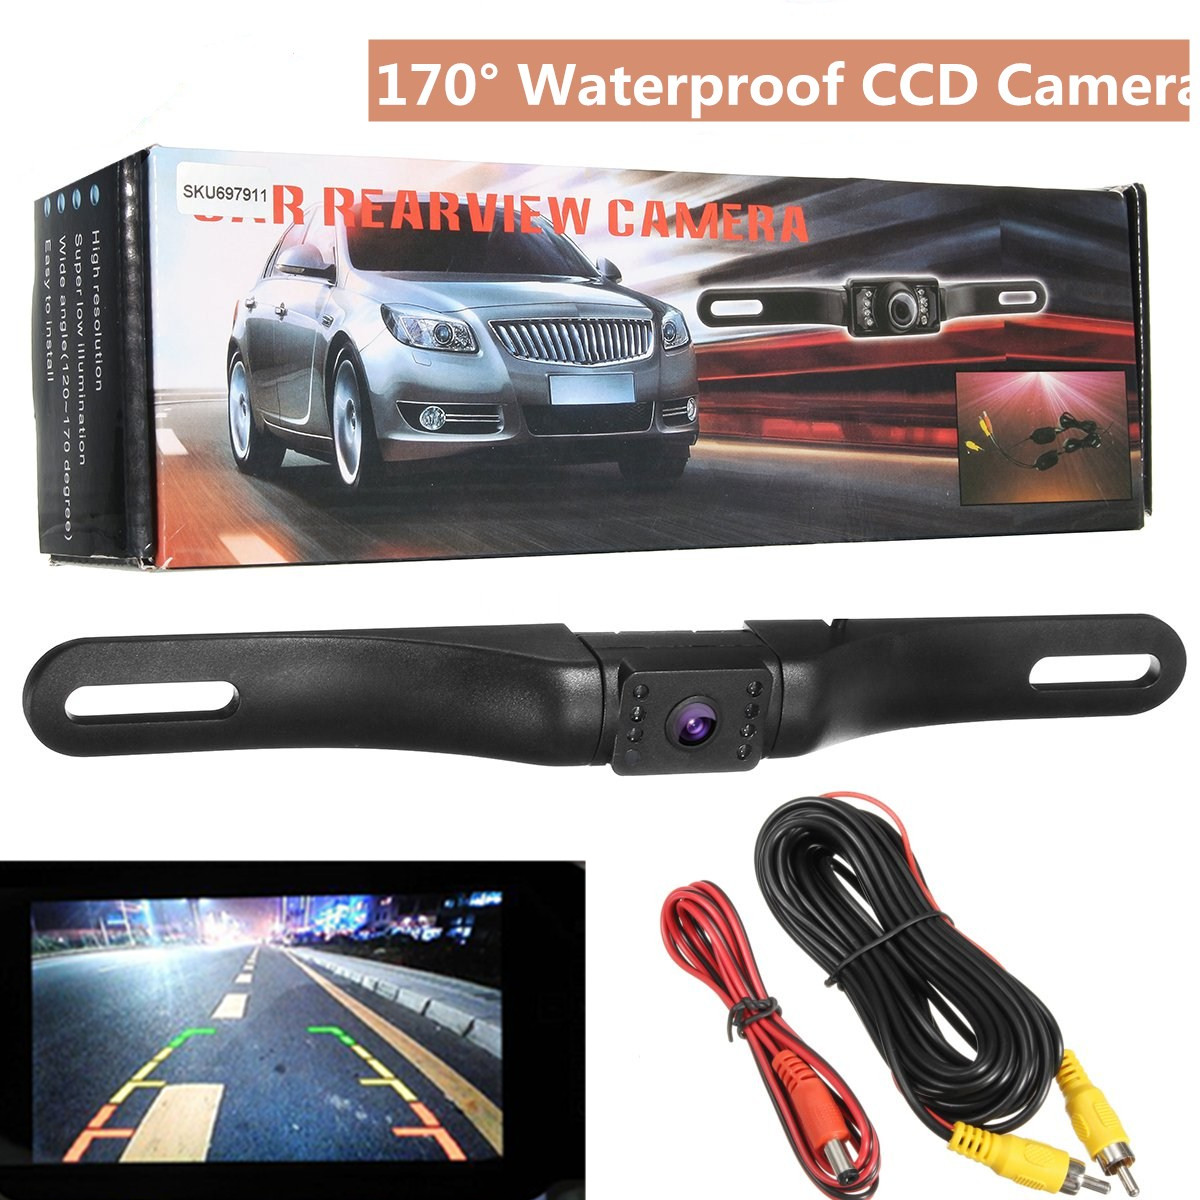 170° Wide Angle Night Vision License Plate Rear View Camera - Built-in Distance Scale Lines Backup Parking/Reverse Assist Waterproof Cam w/ 520 TVL Resolution & RCA Output Black